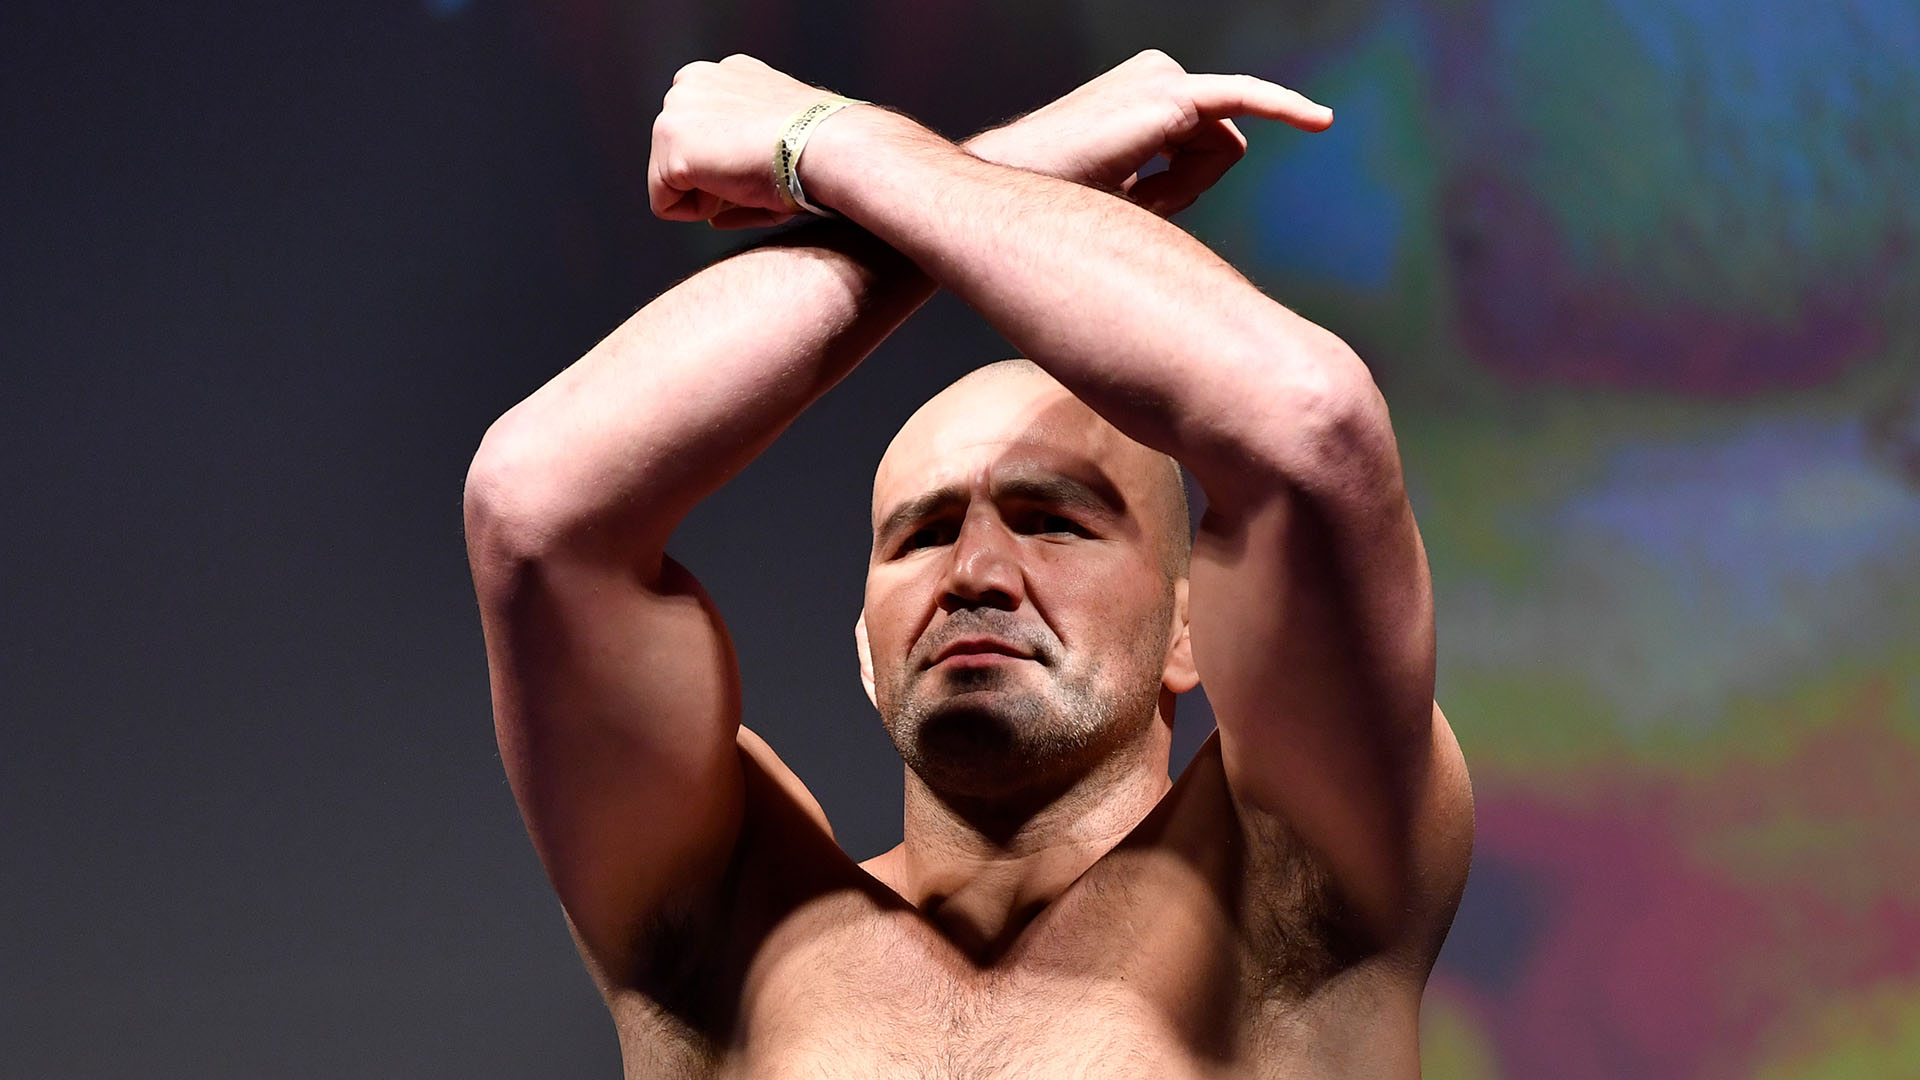 Glover Teixeira of Brazil poses on the scale during the UFC Fight Night weigh-in at Rogers Arena on September 13, 2019 in Vancouver, British Columbia, Canada. (Photo by Jeff Bottari/Zuffa LLC)